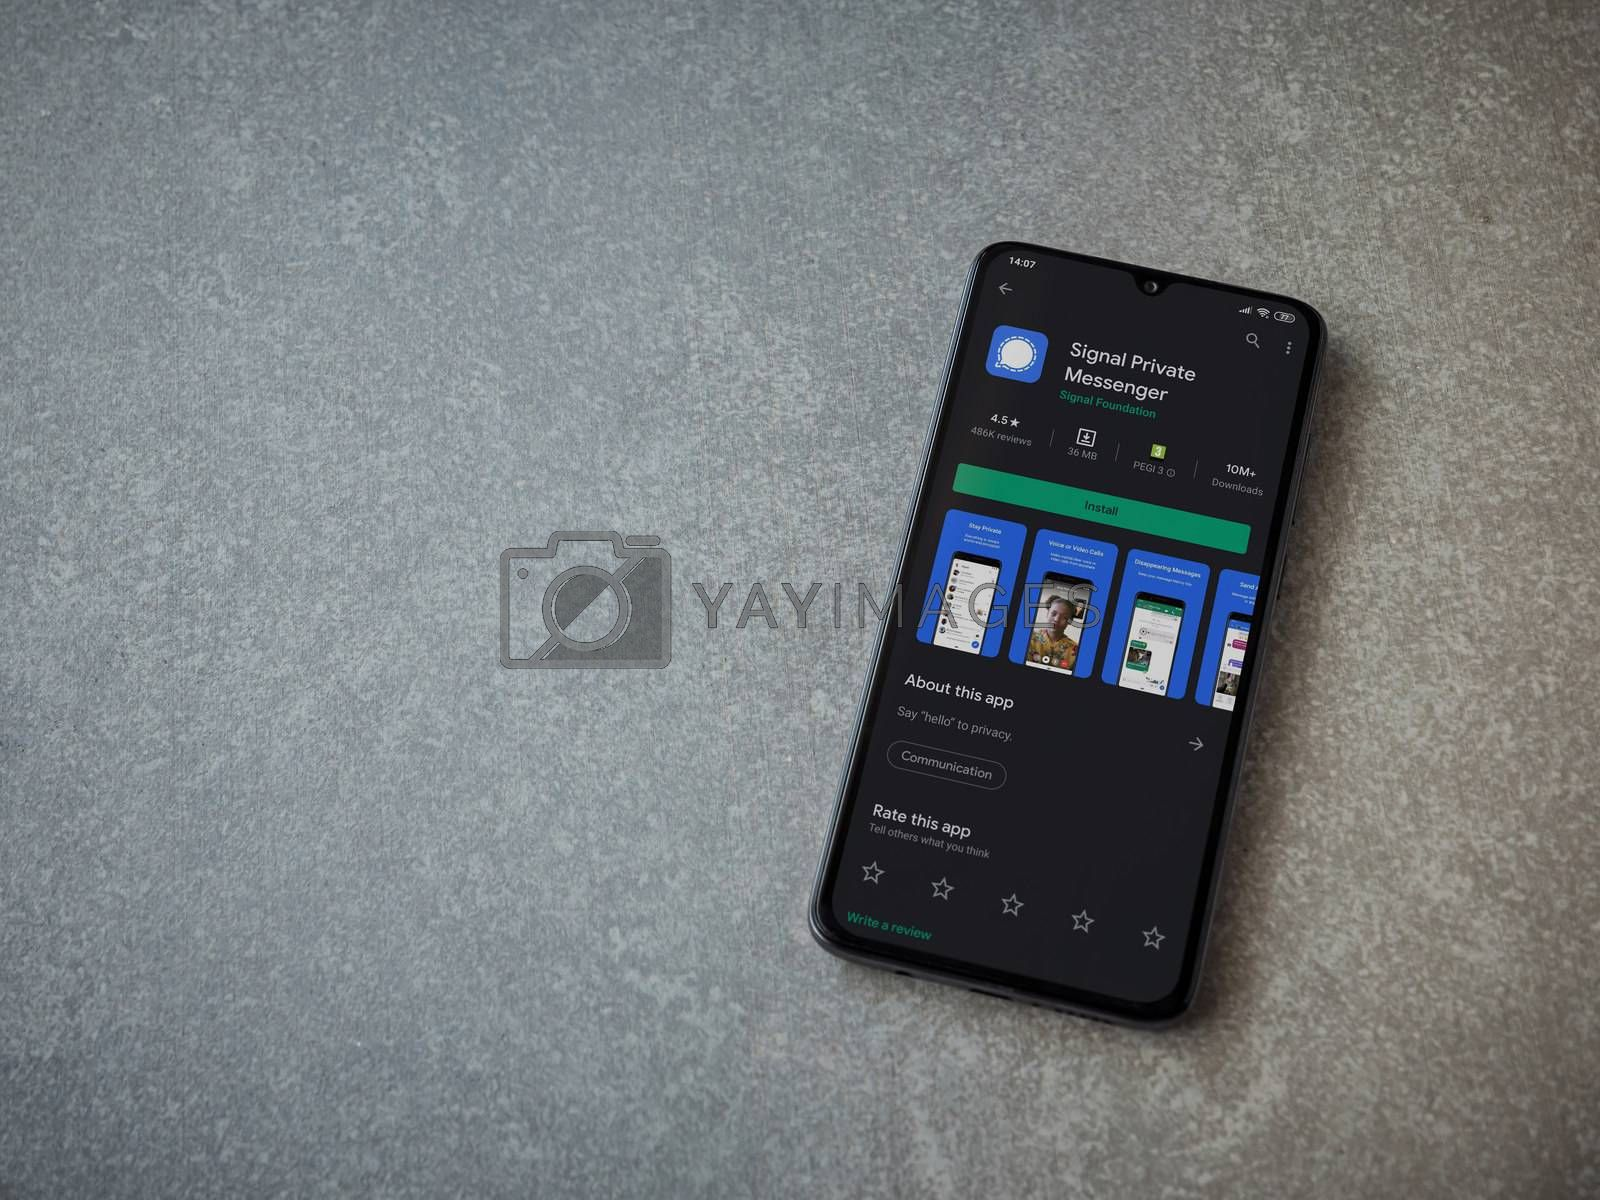 Lod, Israel - July 8, 2020: Signal Private Messenger app play store page on the display of a black mobile smartphone on ceramic stone background. Top view flat lay with copy space.